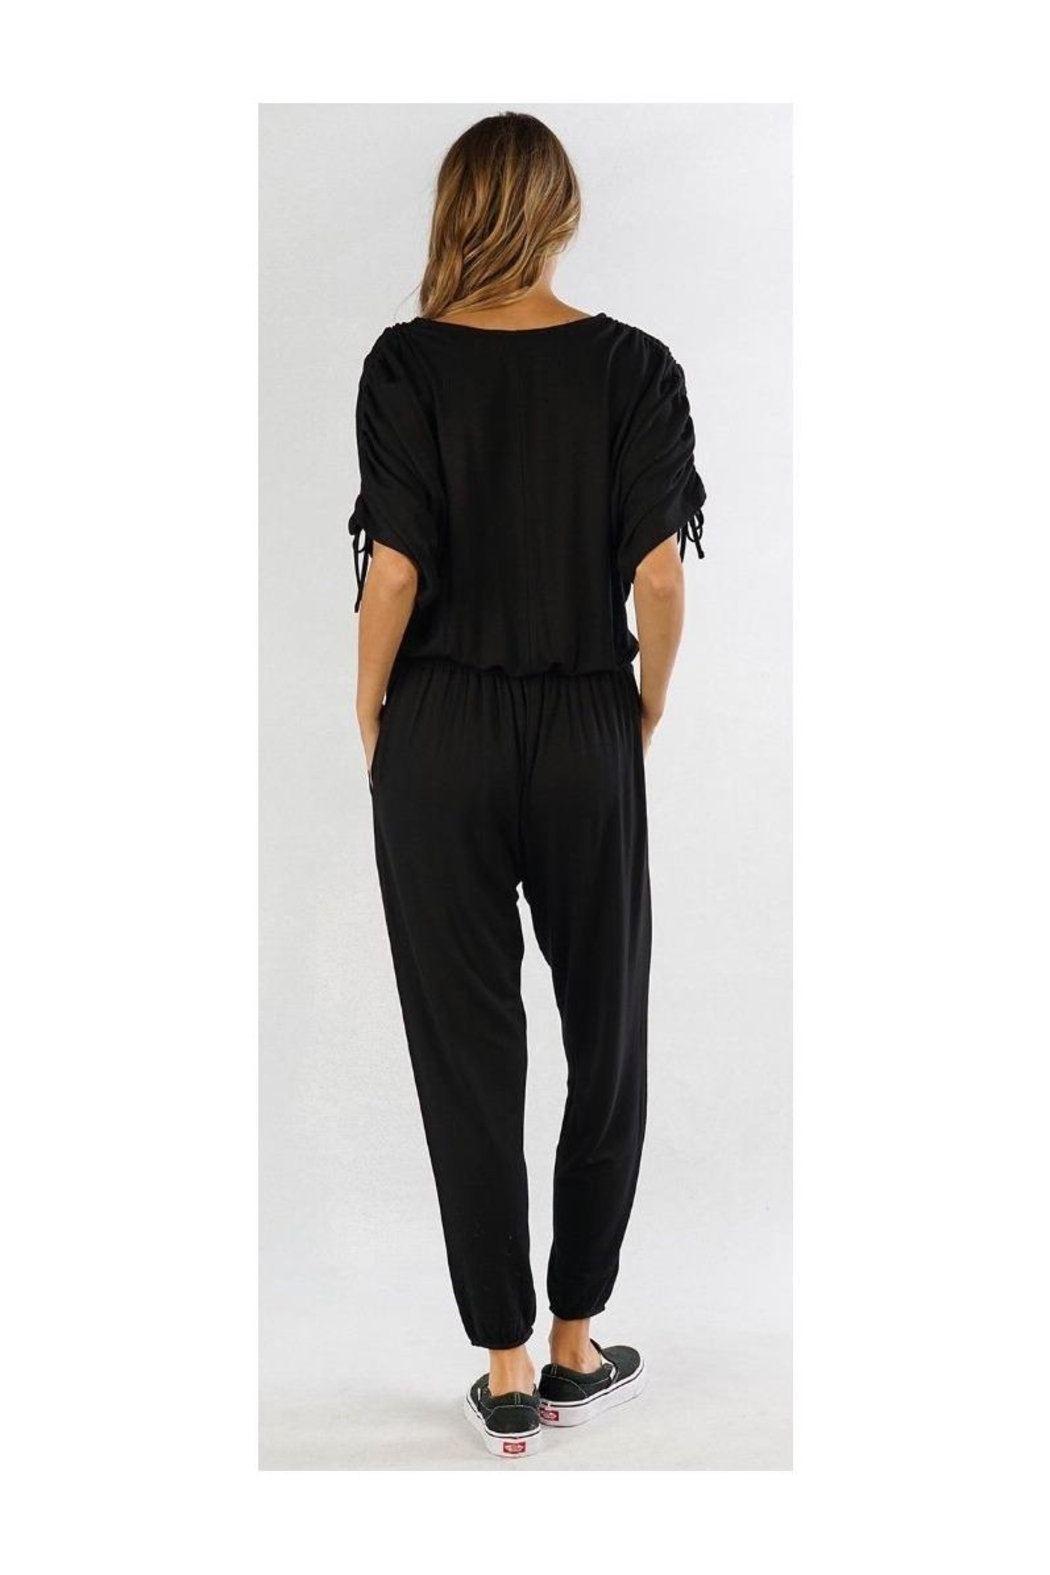 Lovestitch Black Lounge Jumpsuit - Side Cropped Image